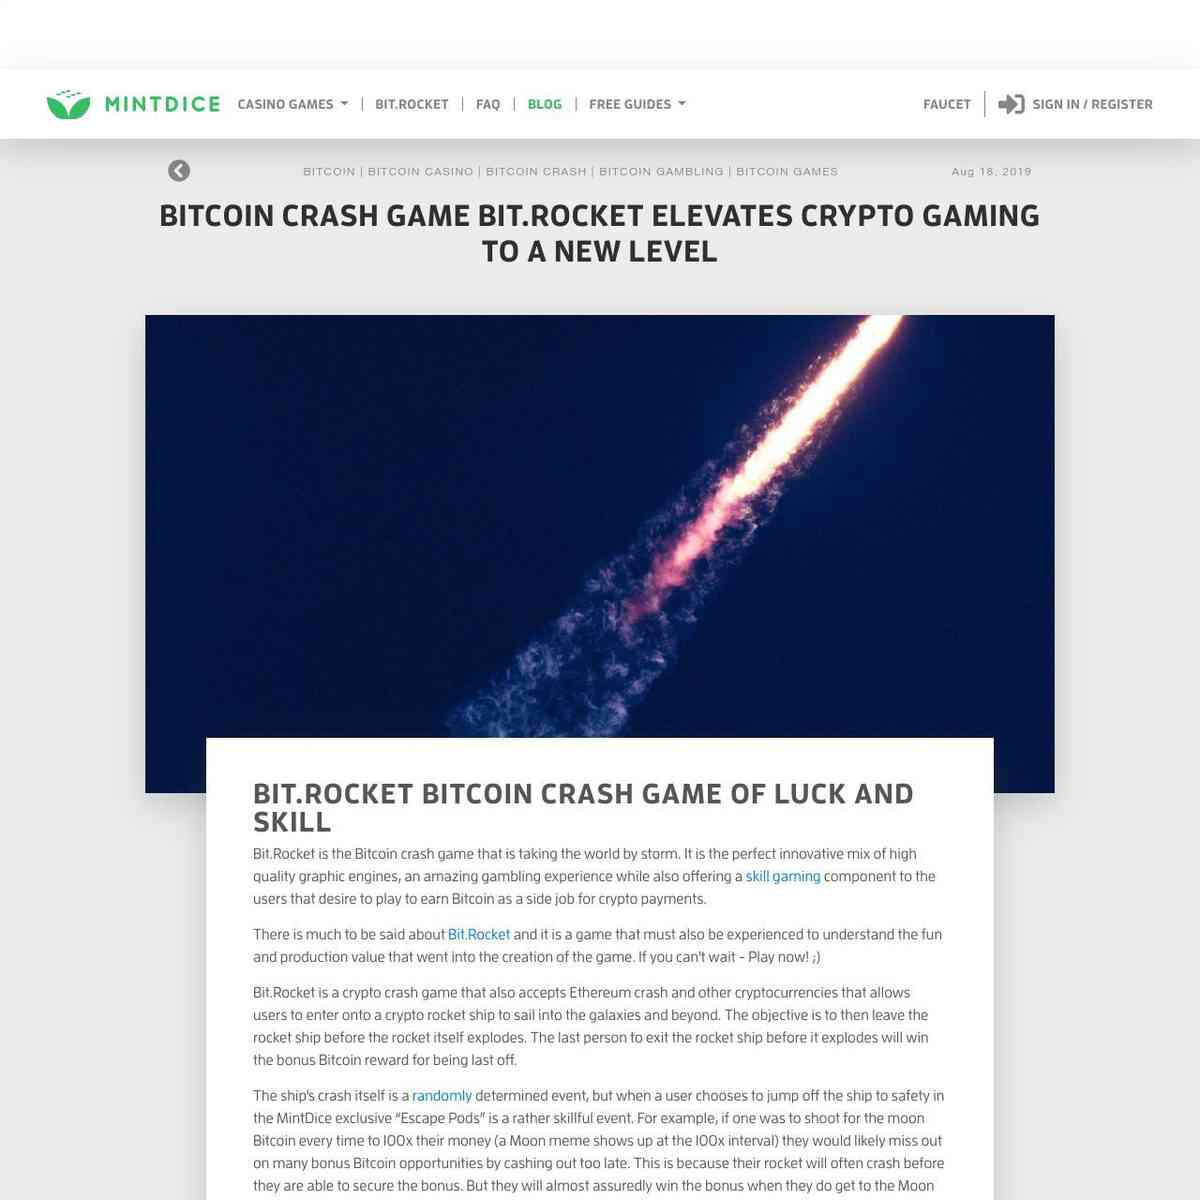 http://Bitcoin Crash Game Bit.Rocket Elevates Crypto Gaming To A New Level